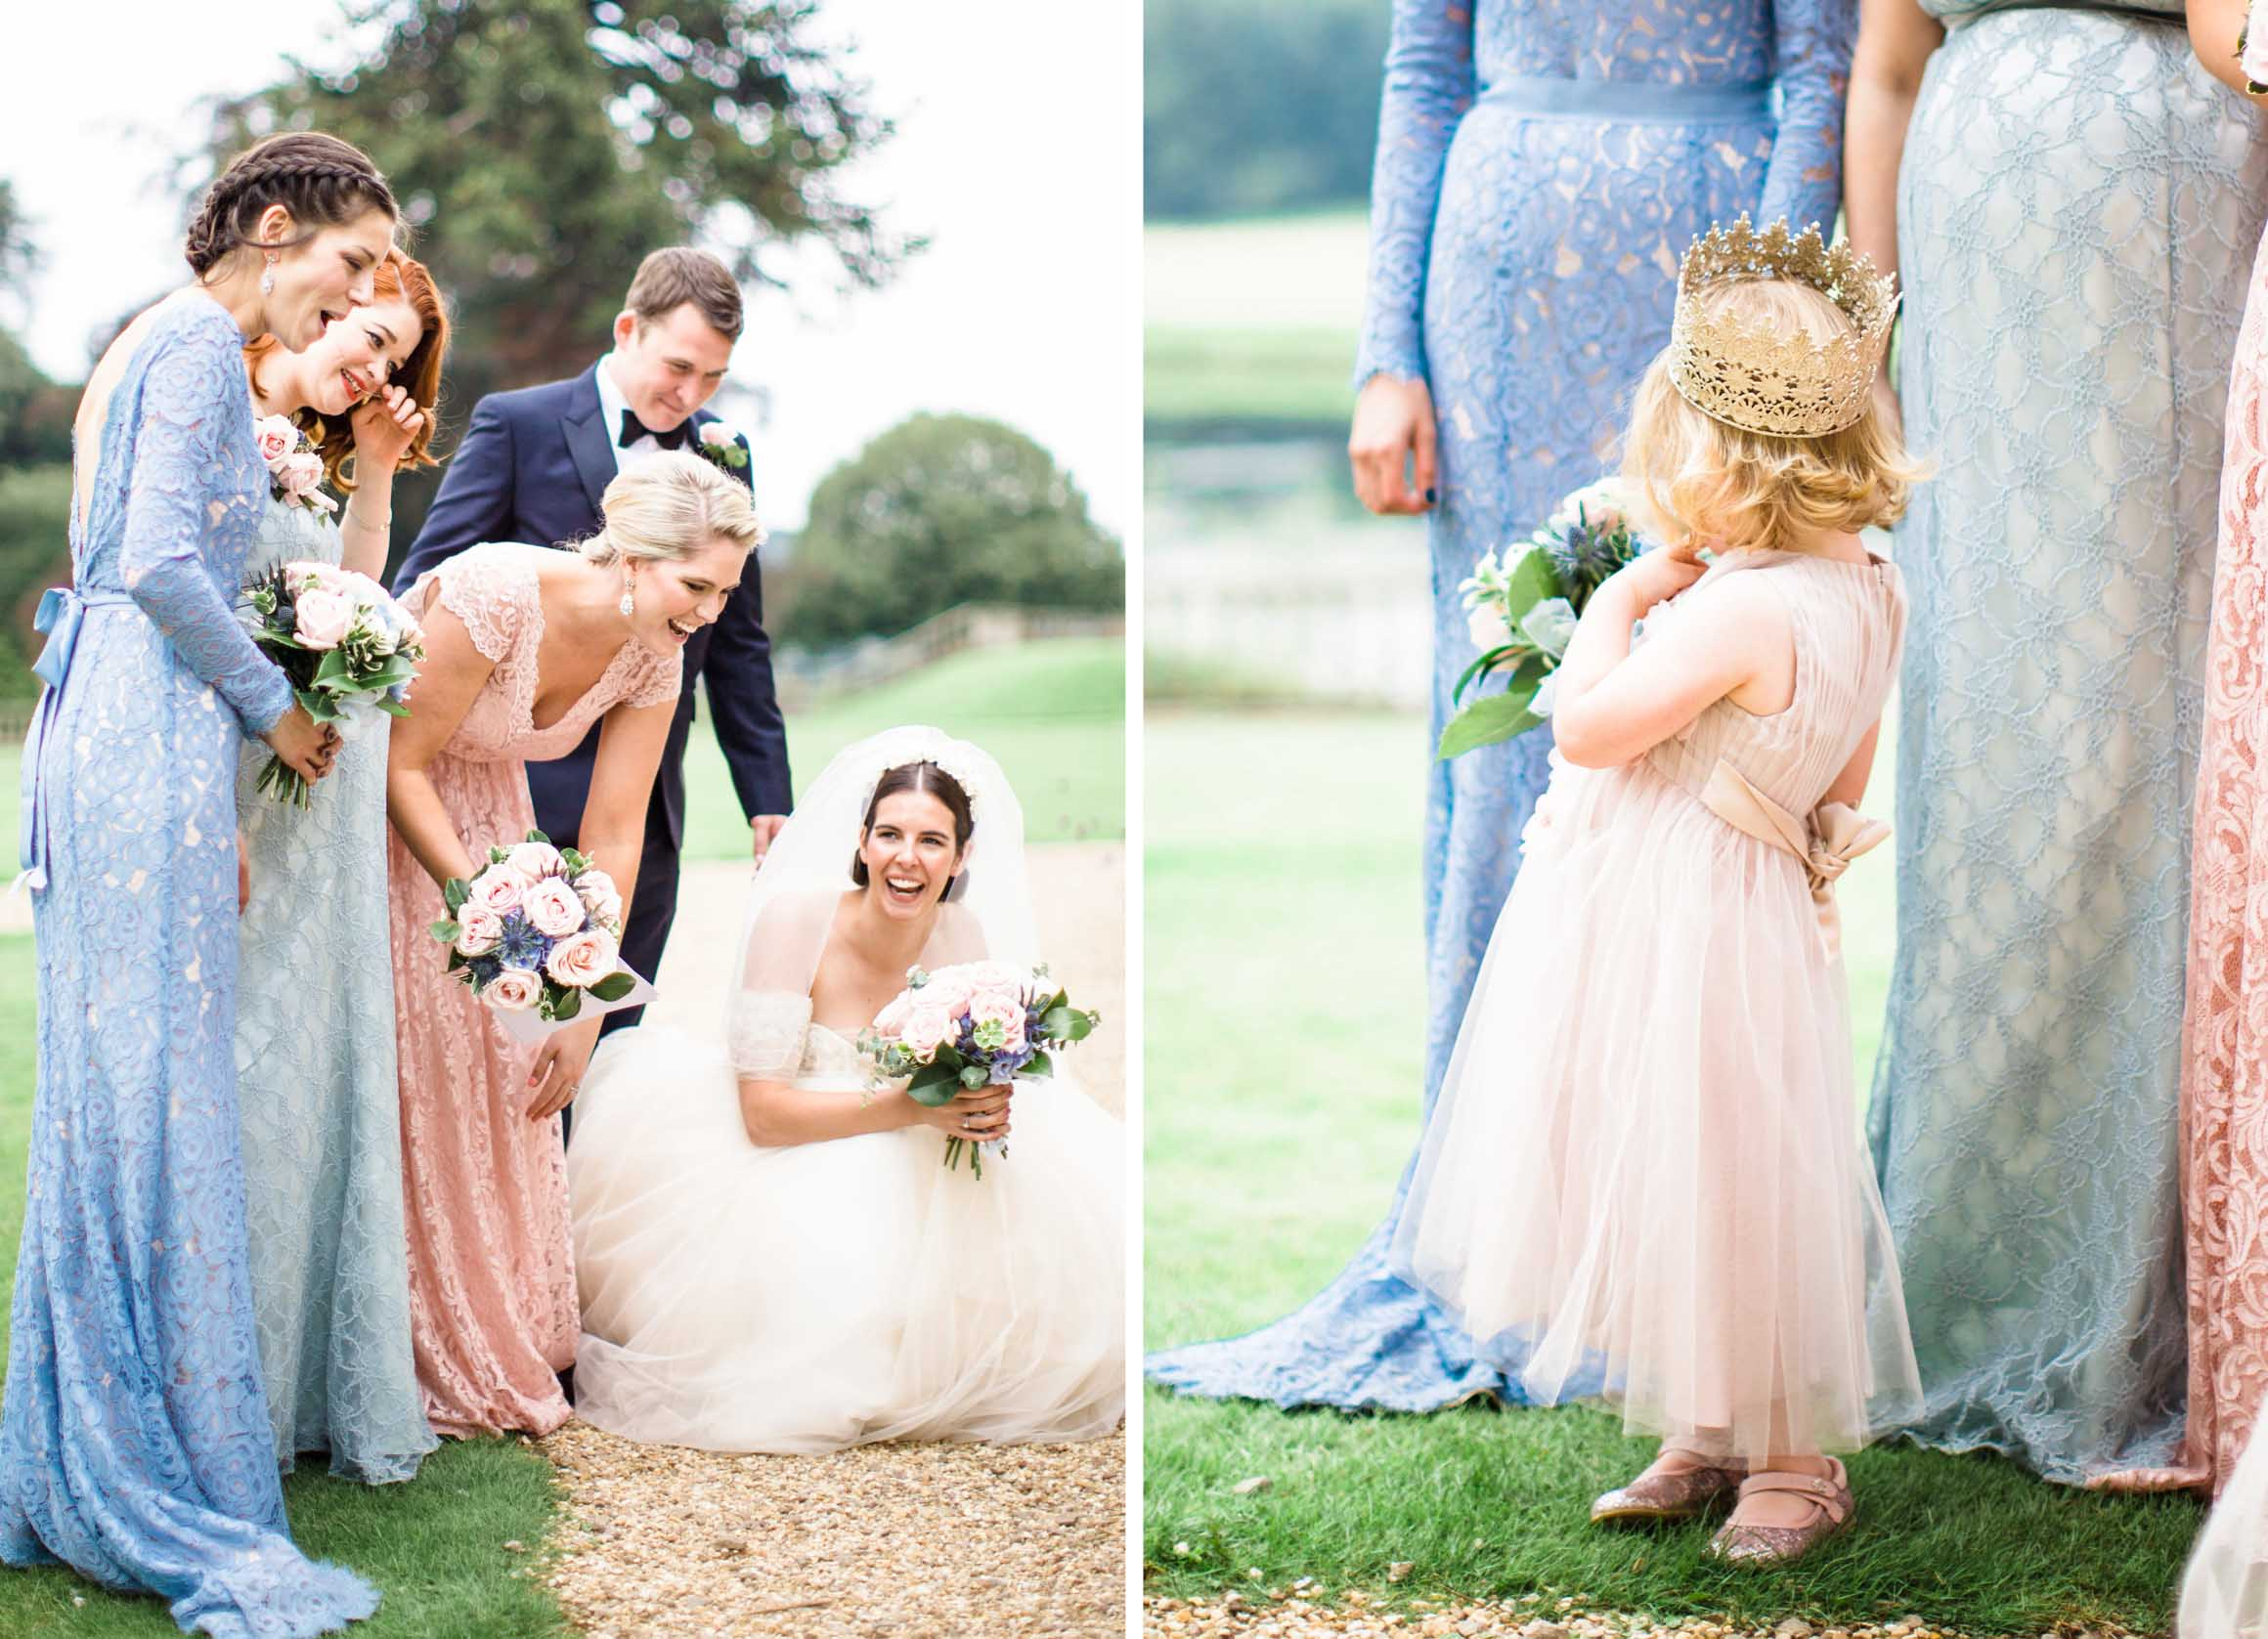 Amy O'Boyle Photography- Destination & UK Fine Art Film Wedding Photographer- Stoneleigh Abbey Wedding 10.jpg